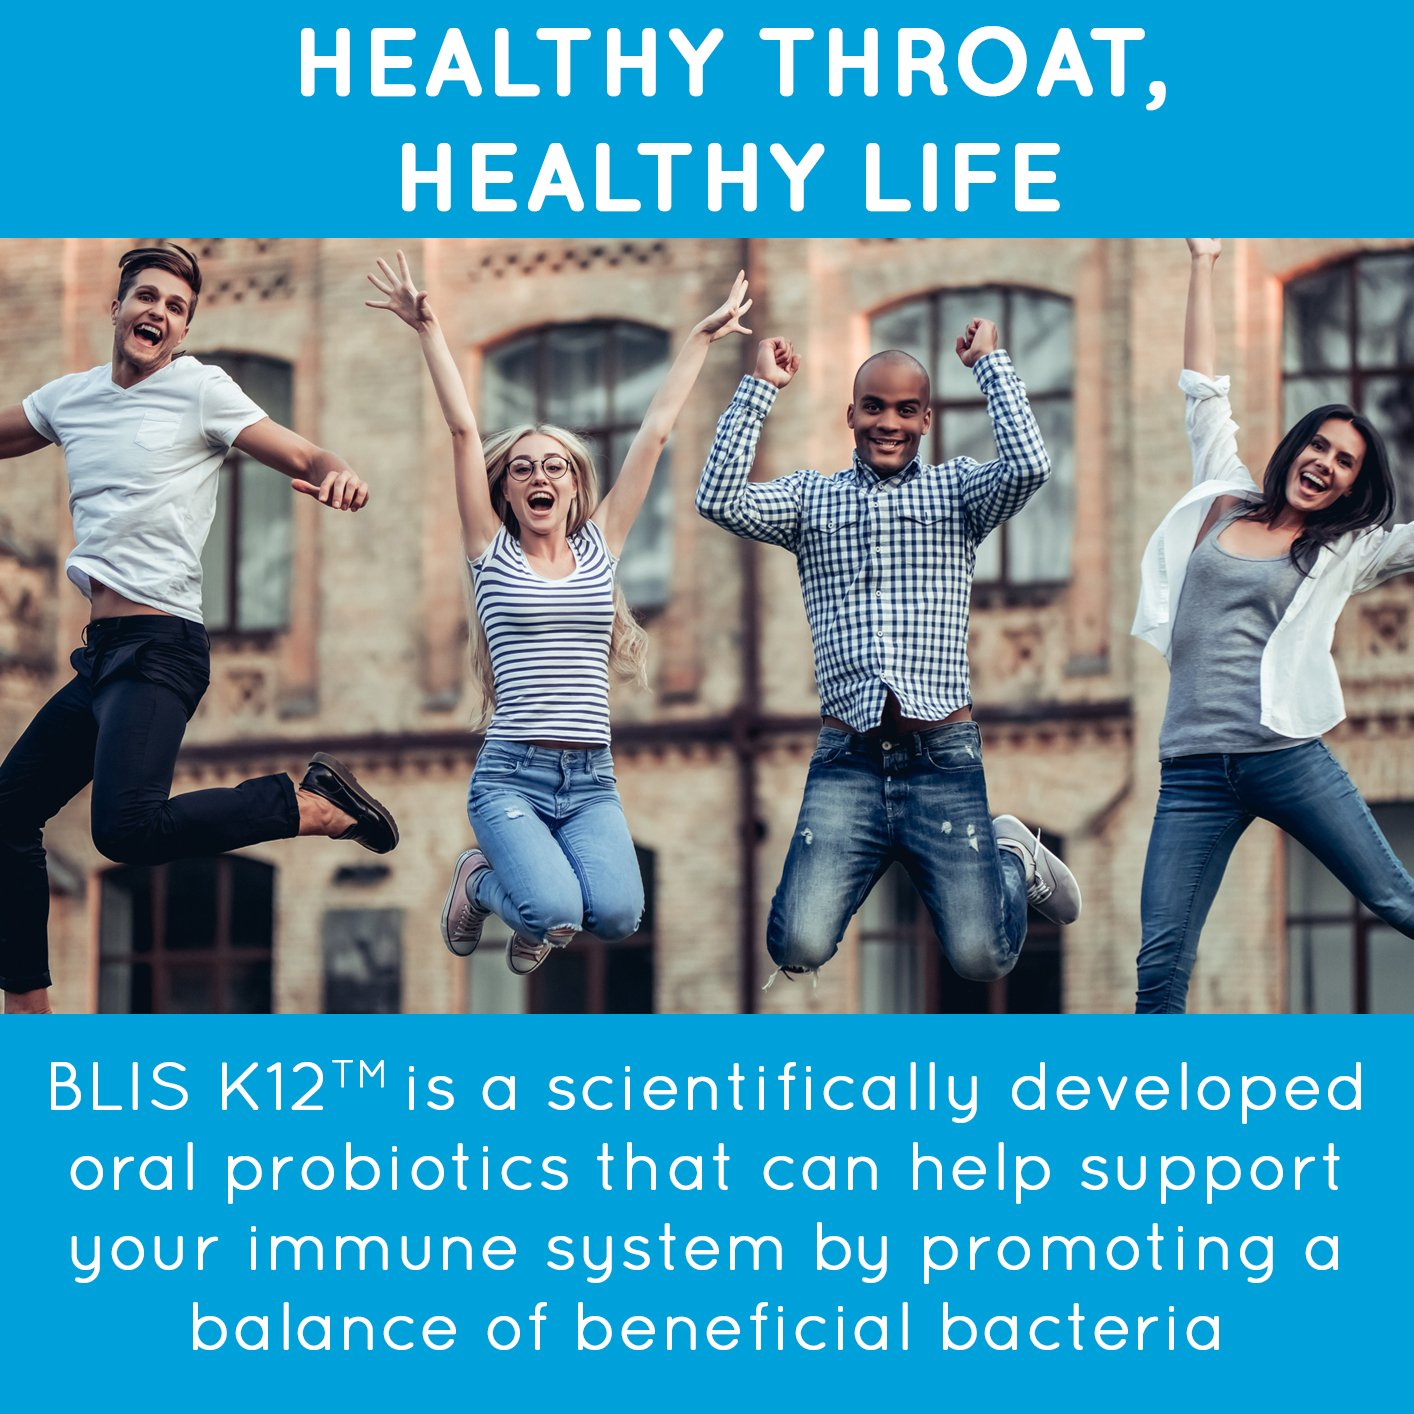 BLIS ThroatHealth Oral Probiotic, Most Potent BLIS K12 Formula Available, 2.5 Billion CFU, Throat Immunity Support for Adults and Kids, Sugar-Free Lozenges, 30 Day Supply by bliss (Image #4)